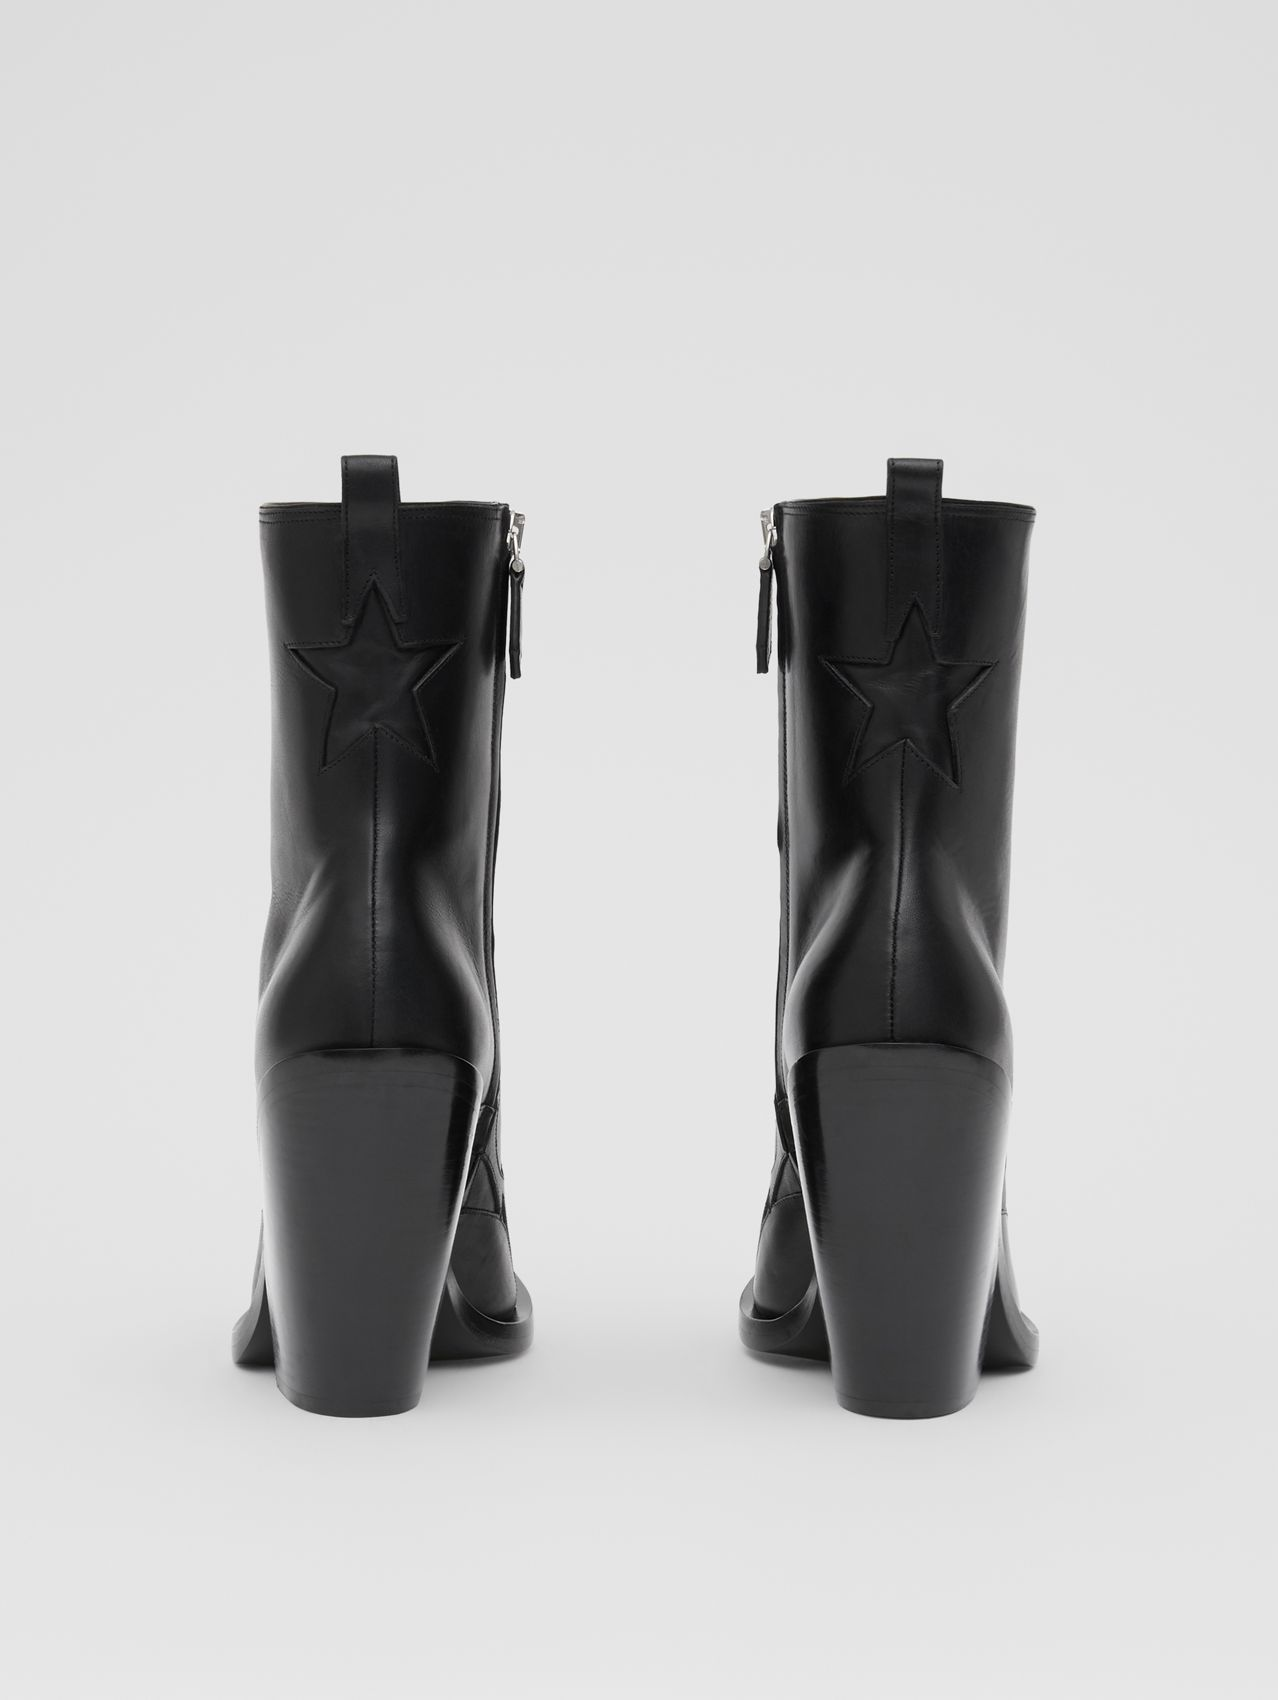 Bottines à talon bottier en cuir avec étoile in Noir